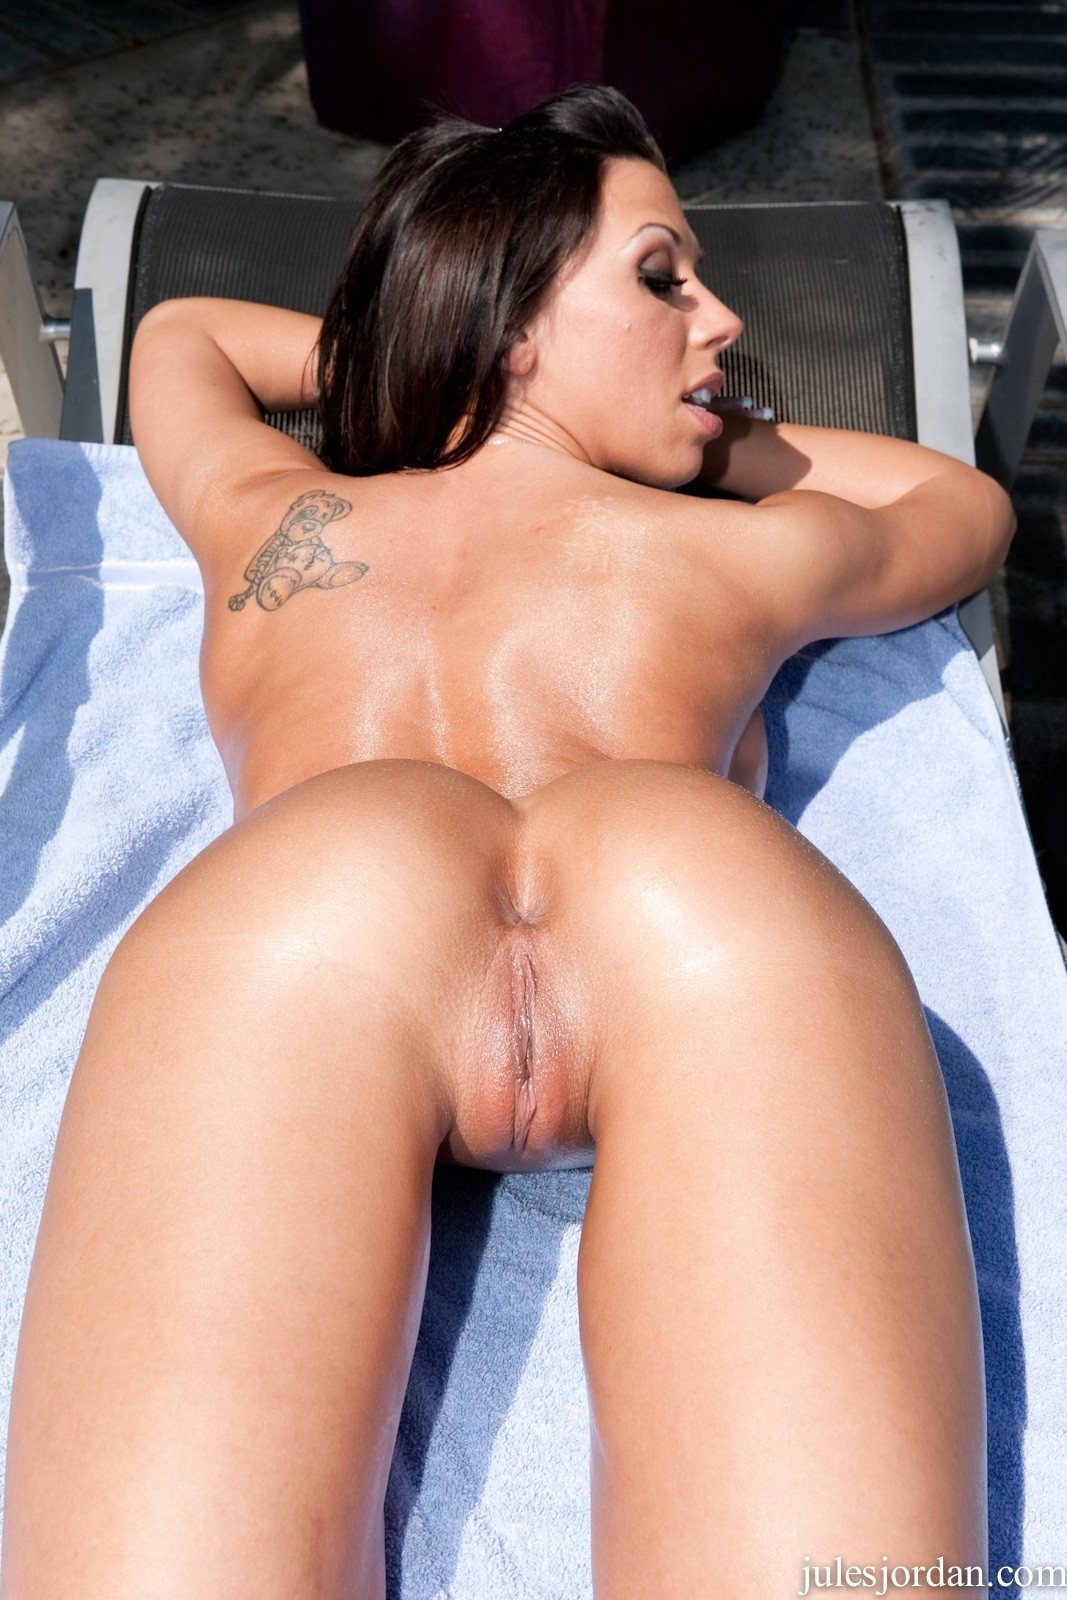 Would like Rachel starr hot naked